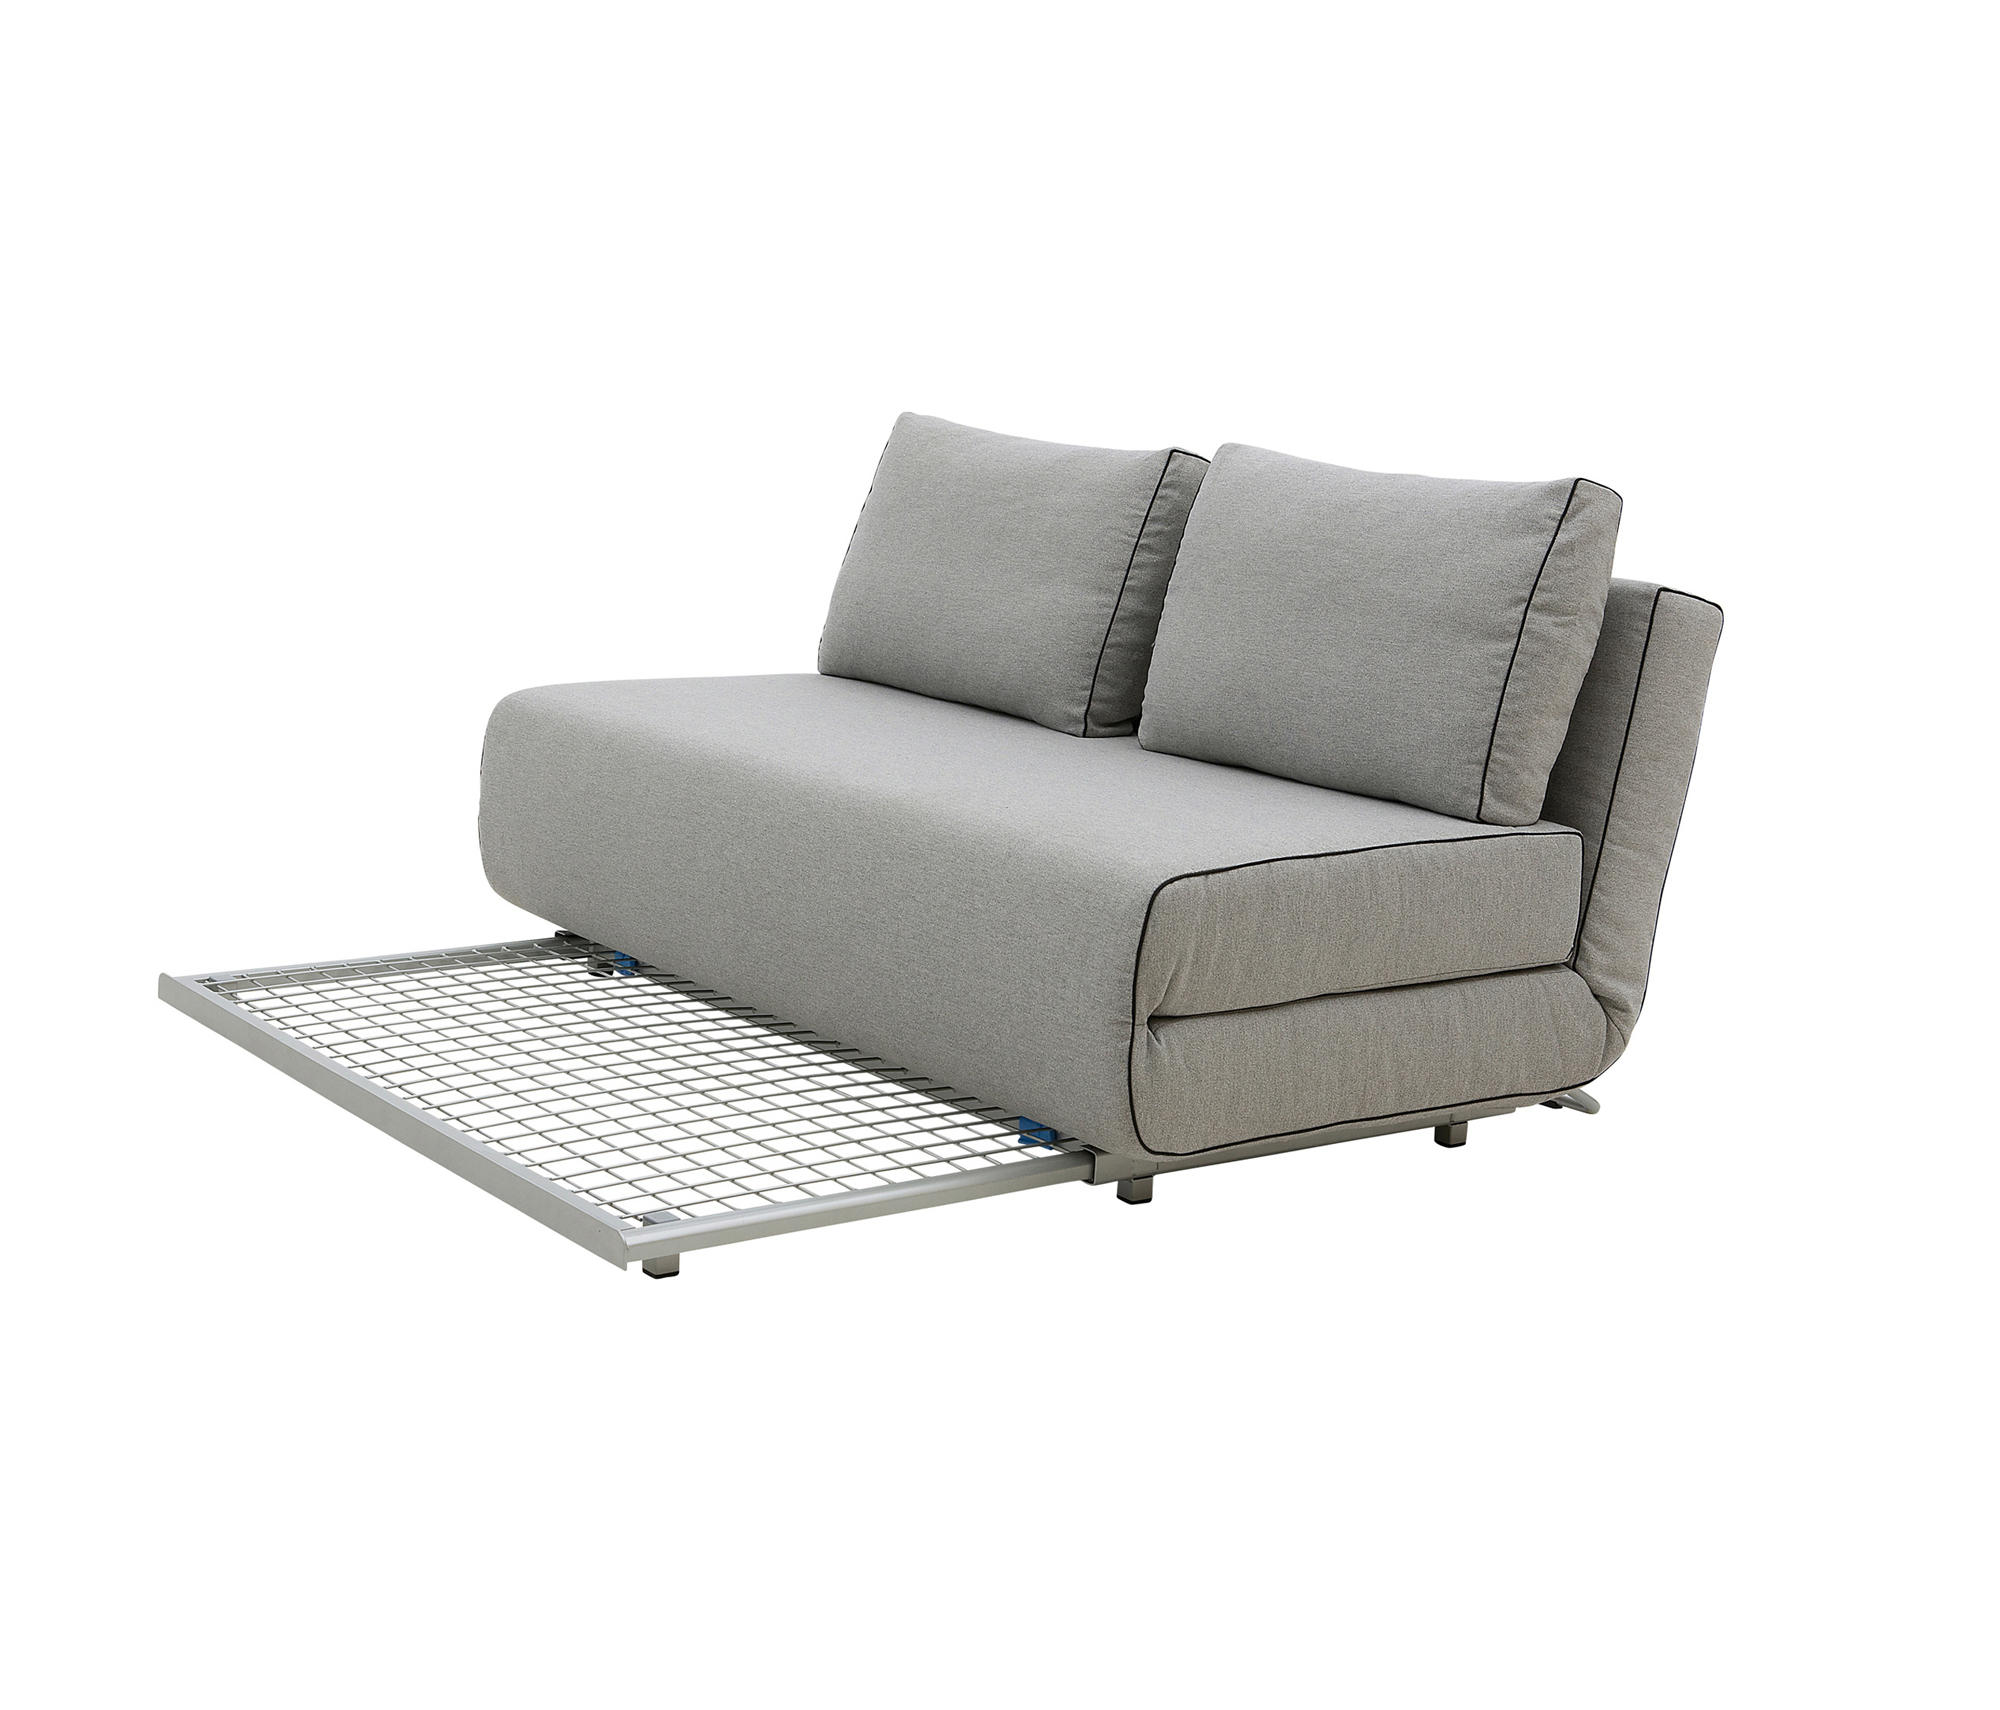 Softline Schlafsofa City Sofa Sofas Von Softline A S Architonic